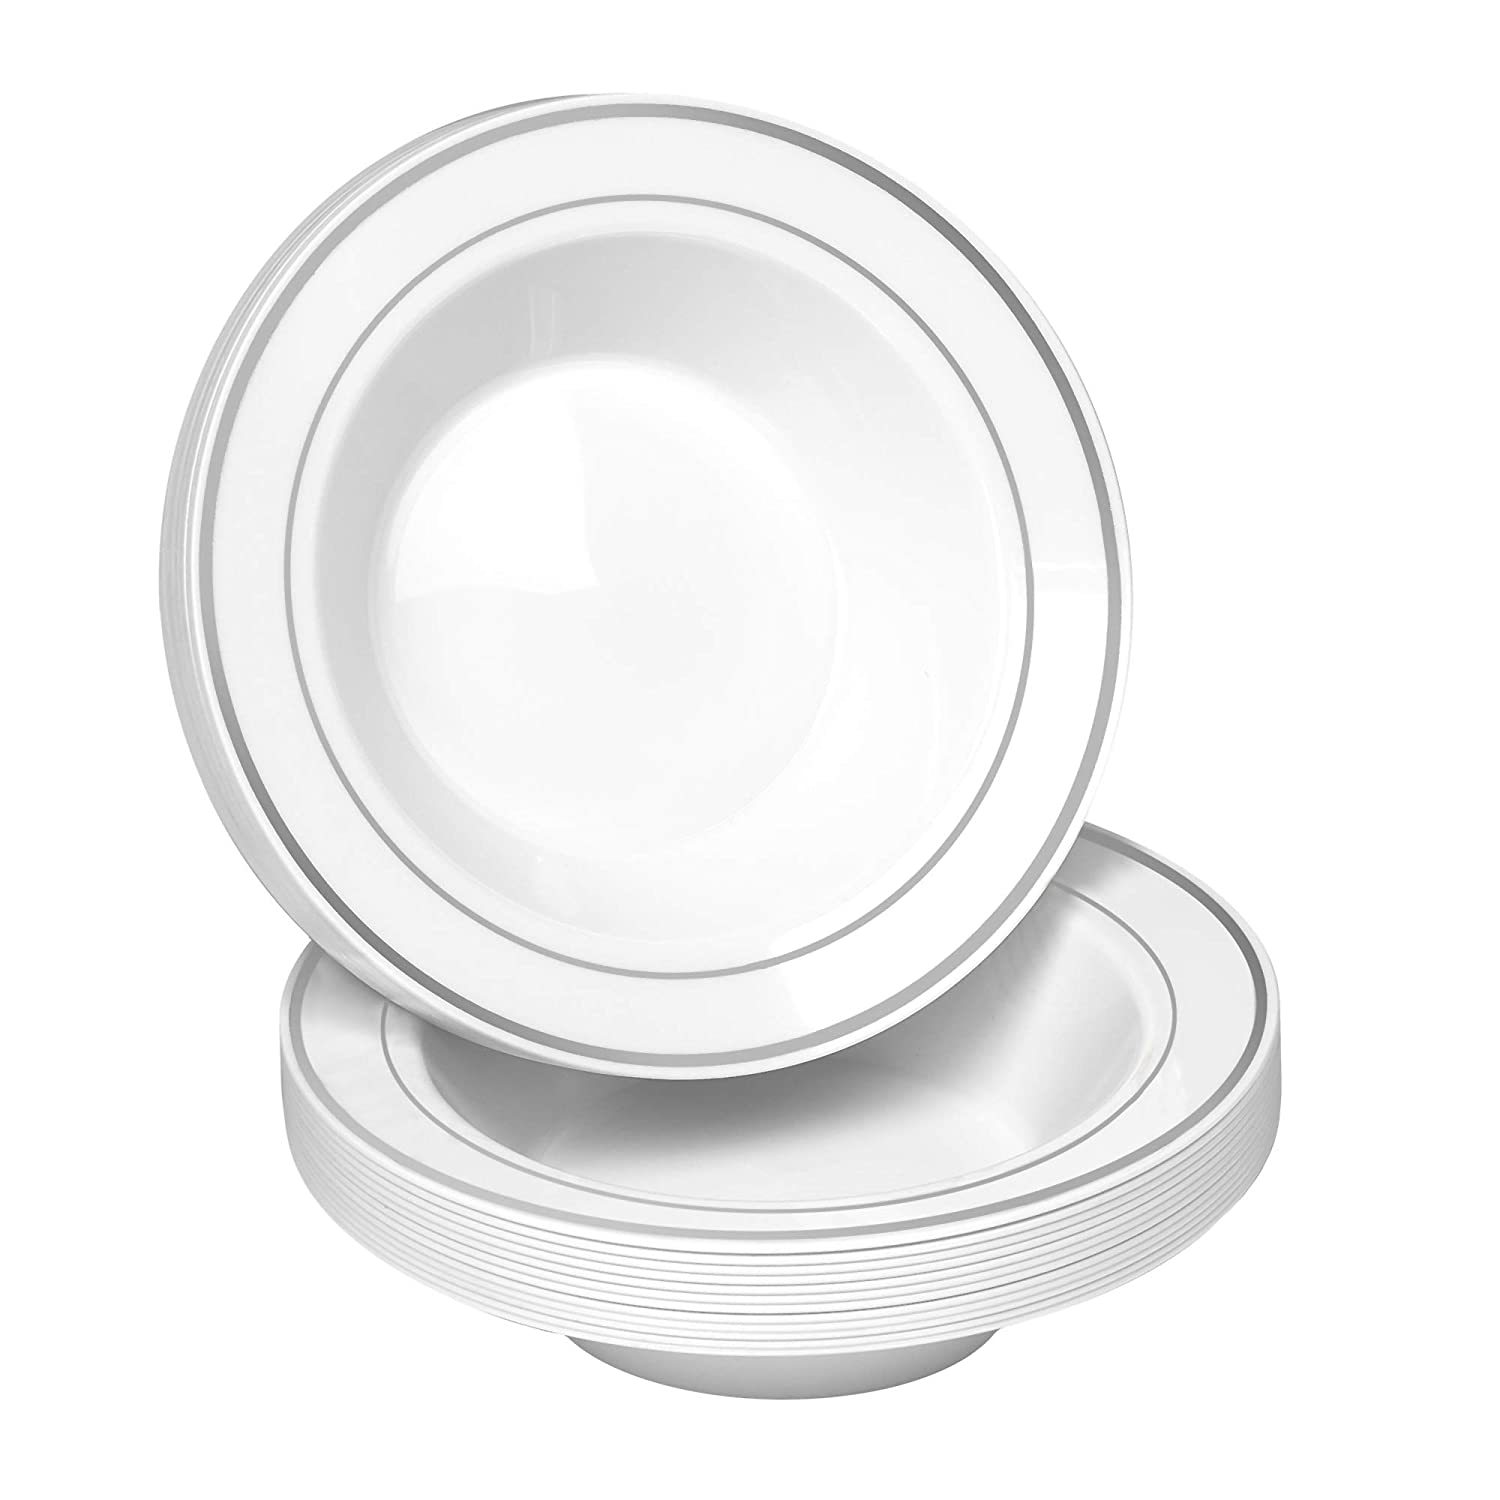 50 Disposable White Silver Rimmed Plastic Soup Bowls   14 oz. Premium Heavy Duty Disposable Dinnerware with Real China Design   Safe & Reusable (50-Pack White/Silver Trim) by Bloomingoods